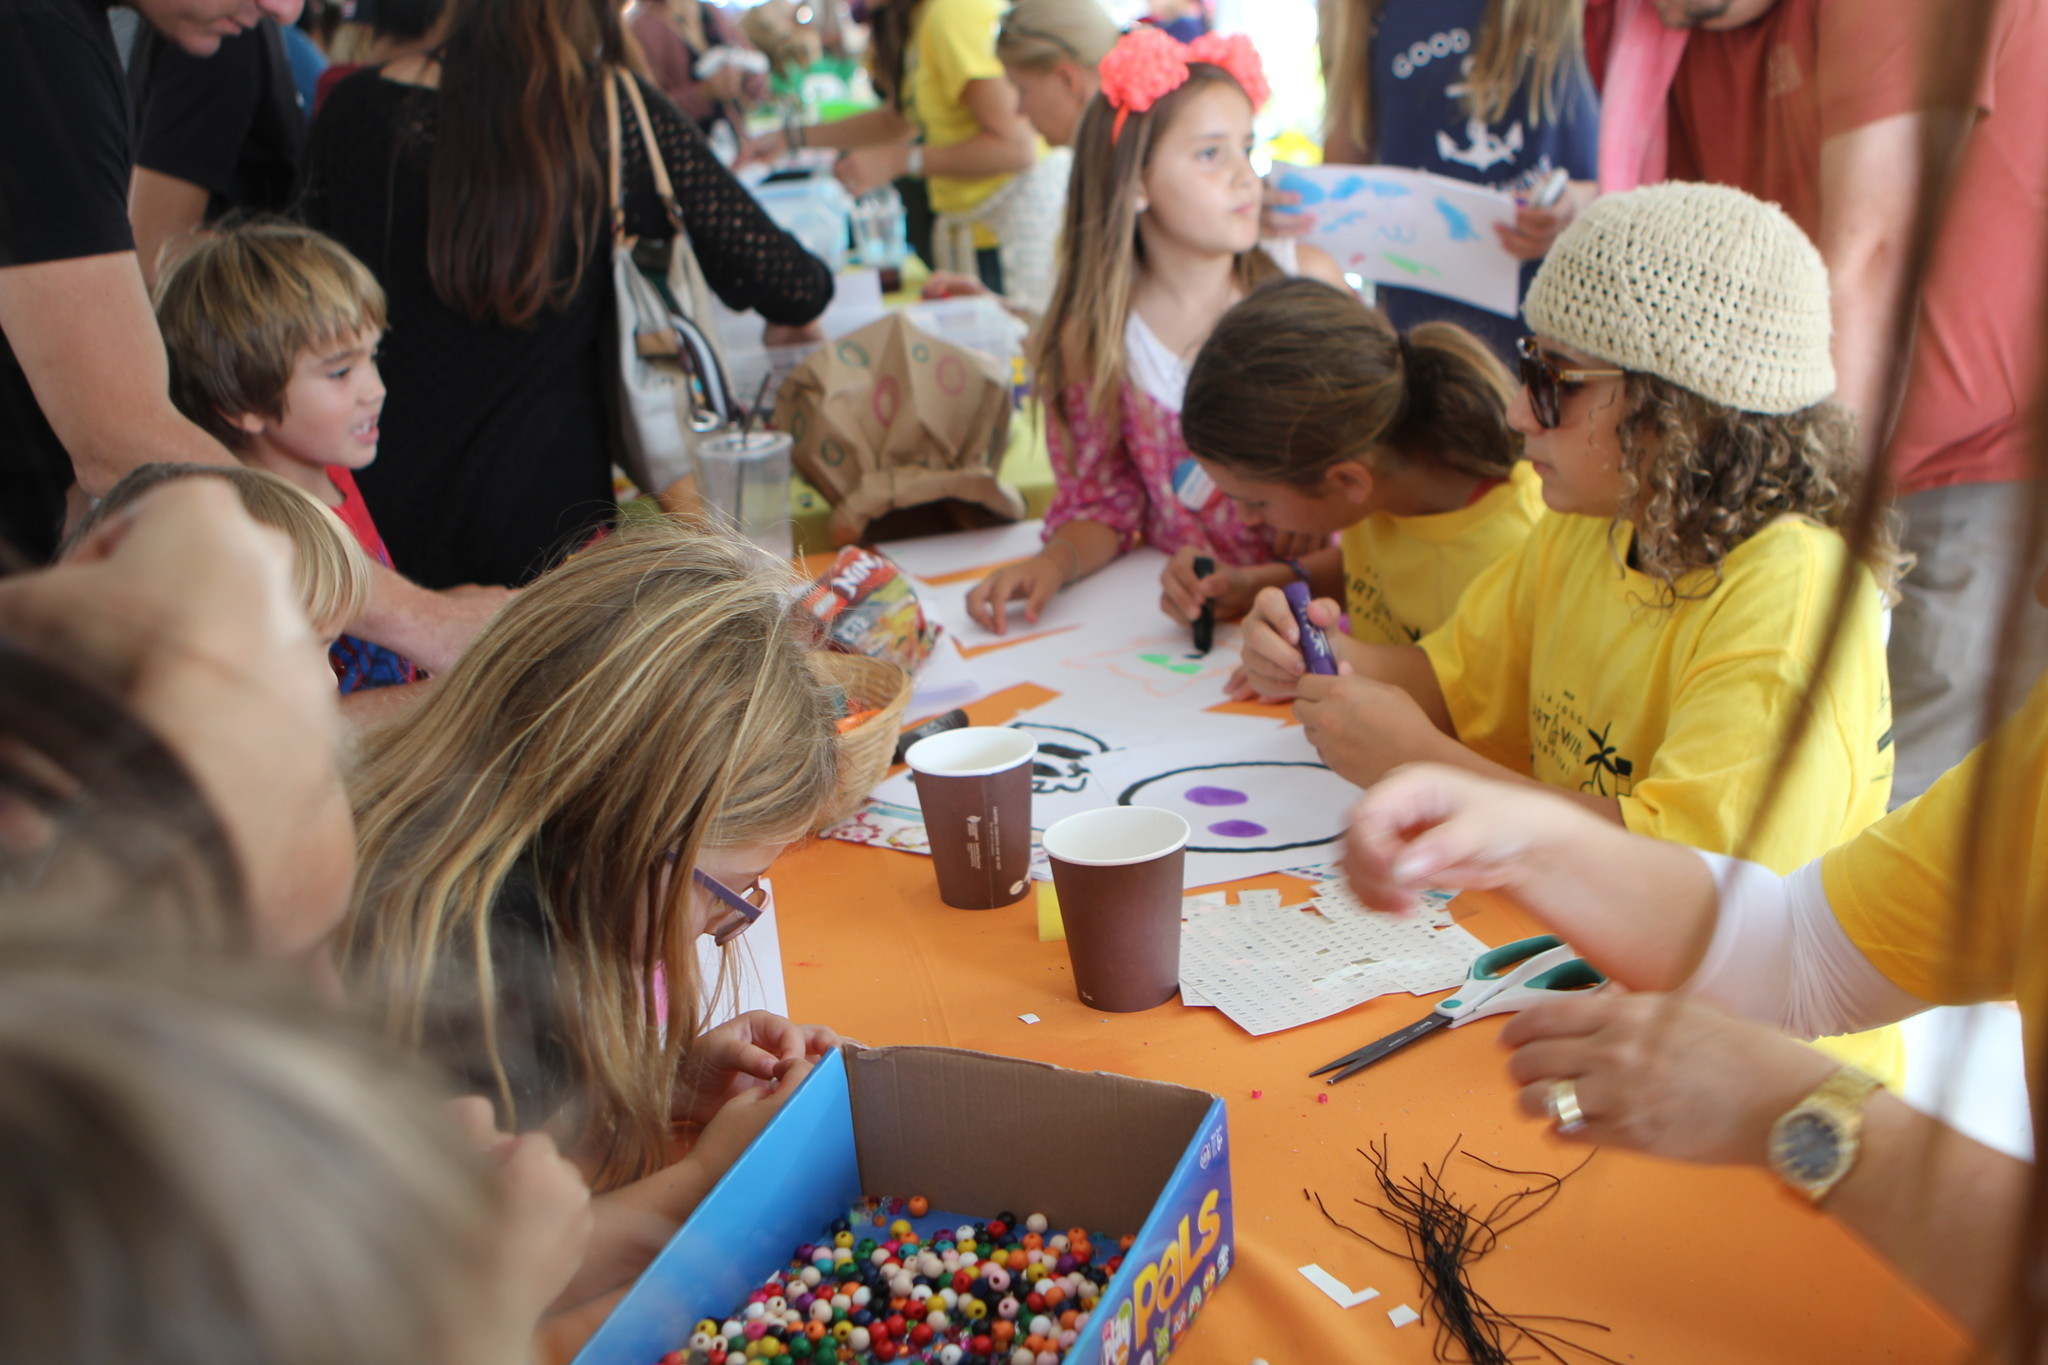 Children paint and make toy jewelry at the Geppetto's Family Art Center + Lab.